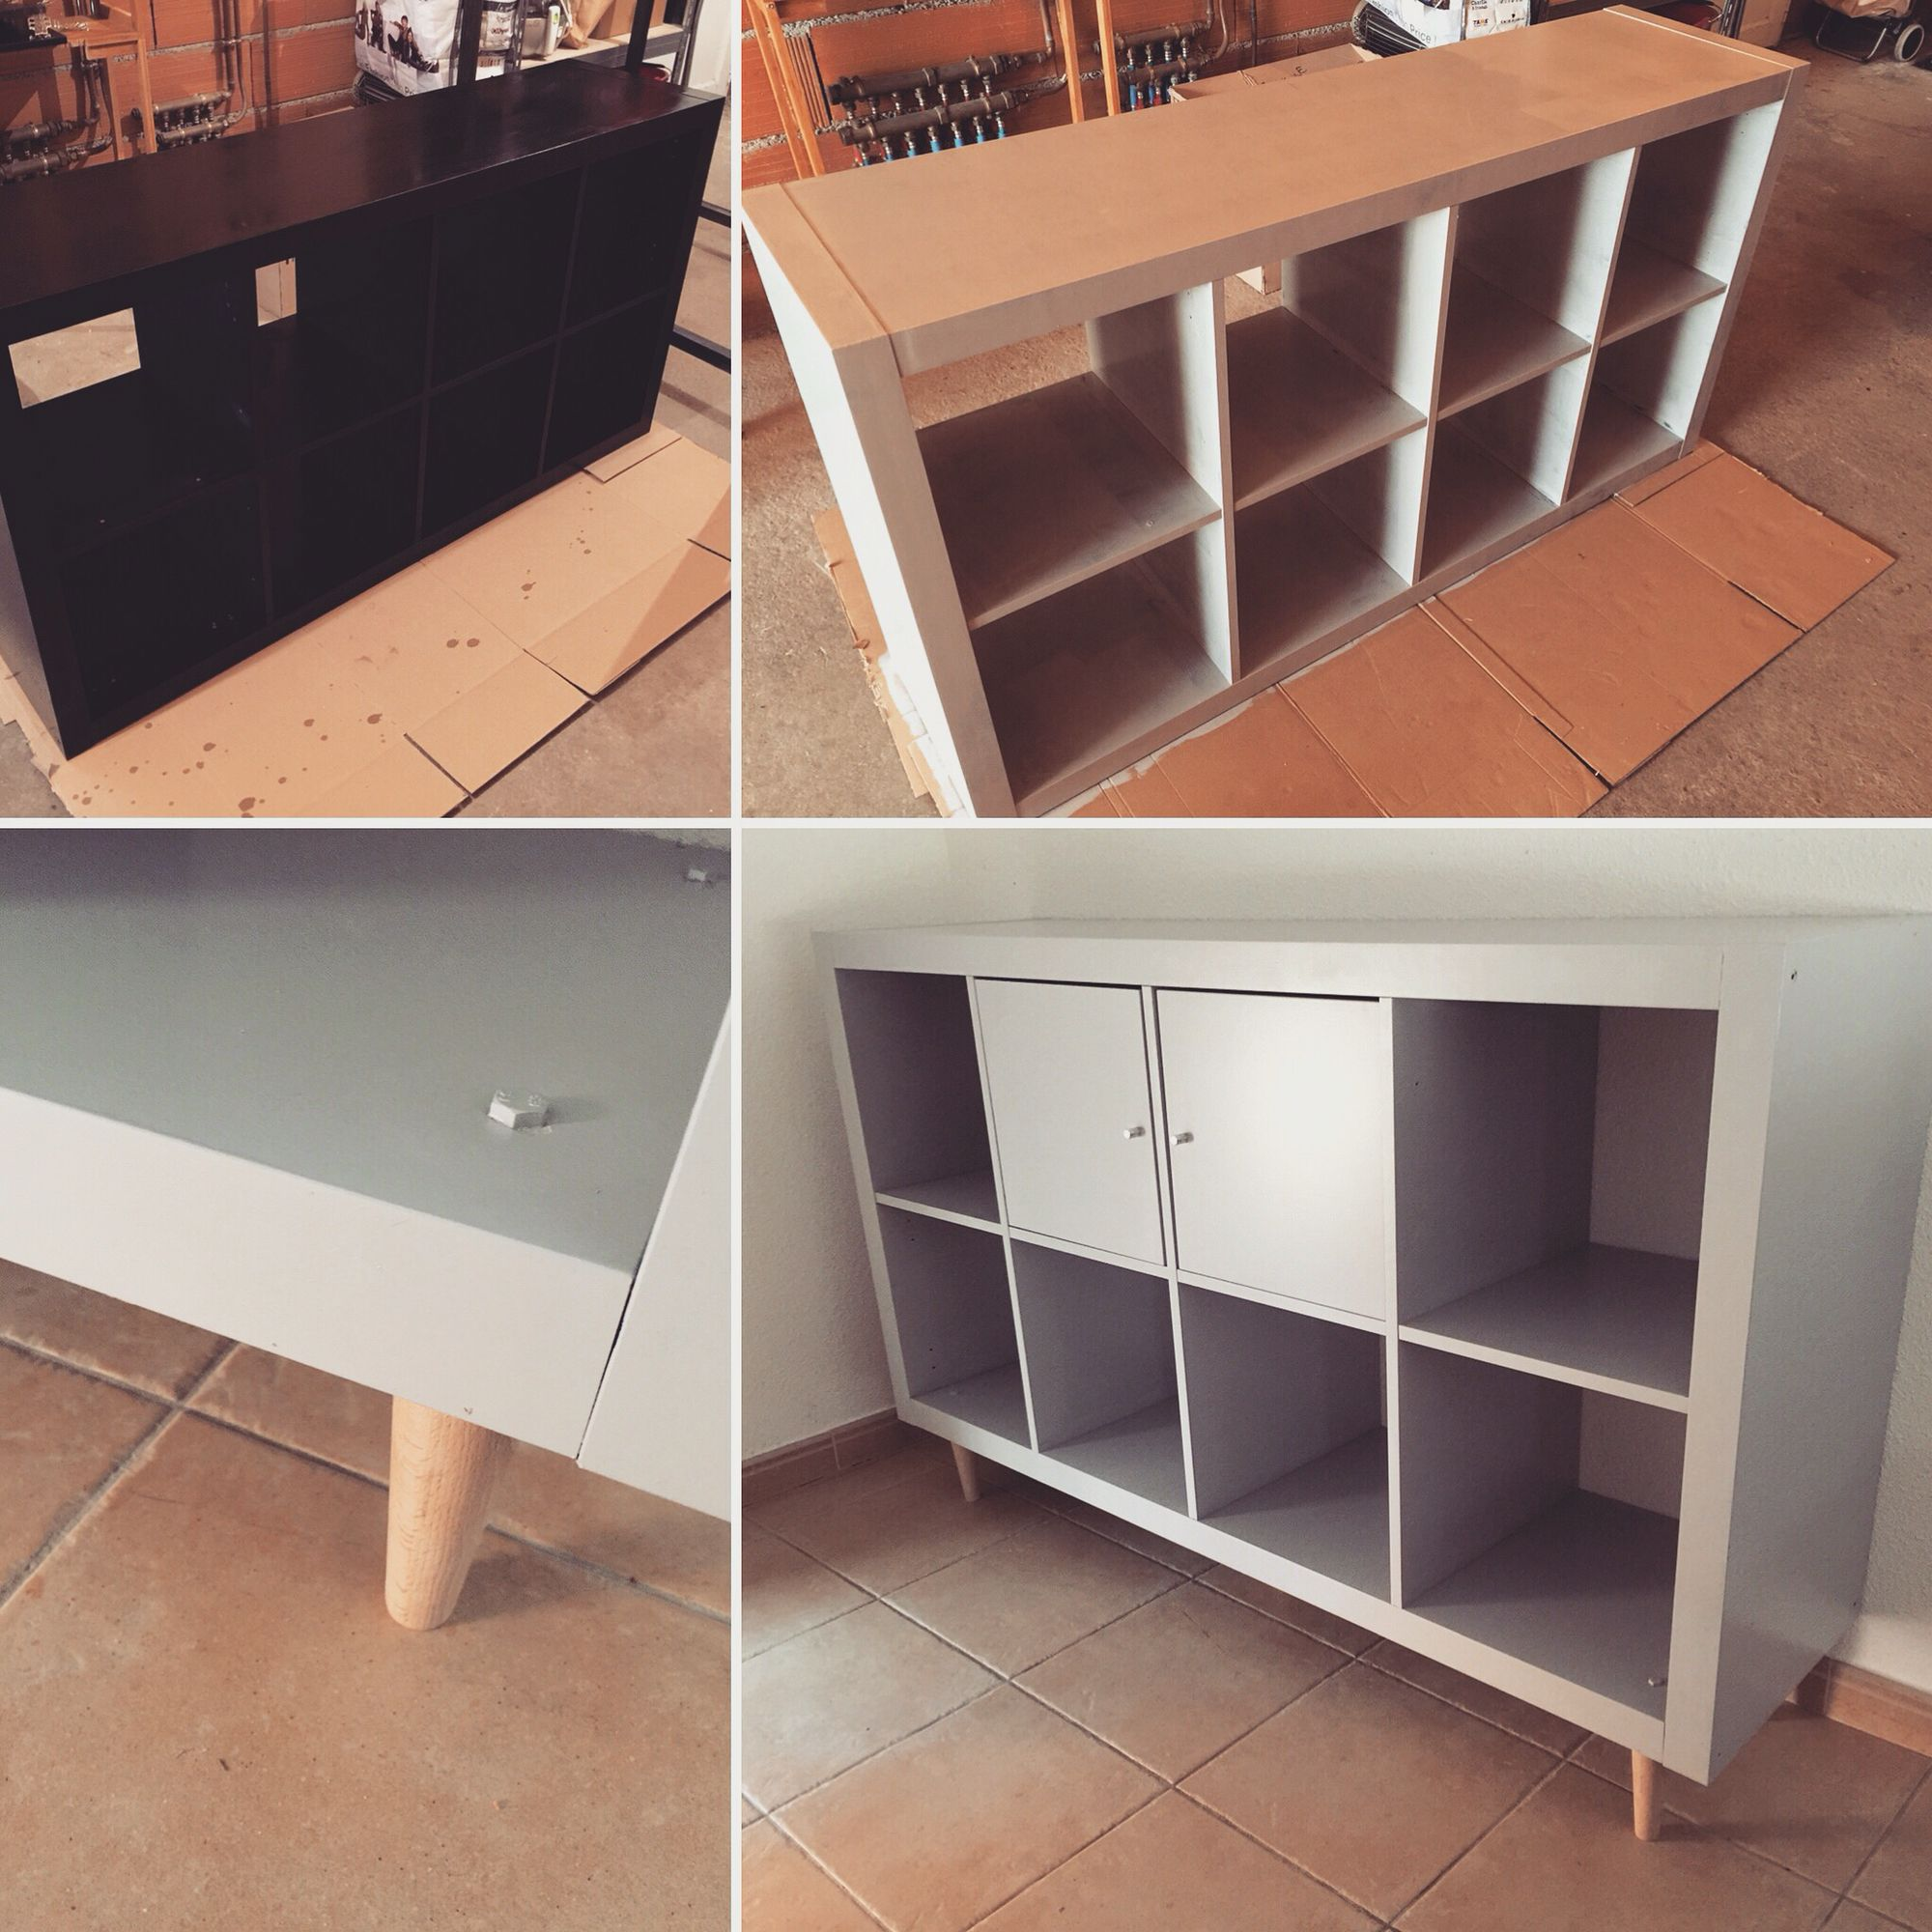 Customiser un meuble ikea kallax ou expedit cr ation by for Deco meuble furniture richibucto